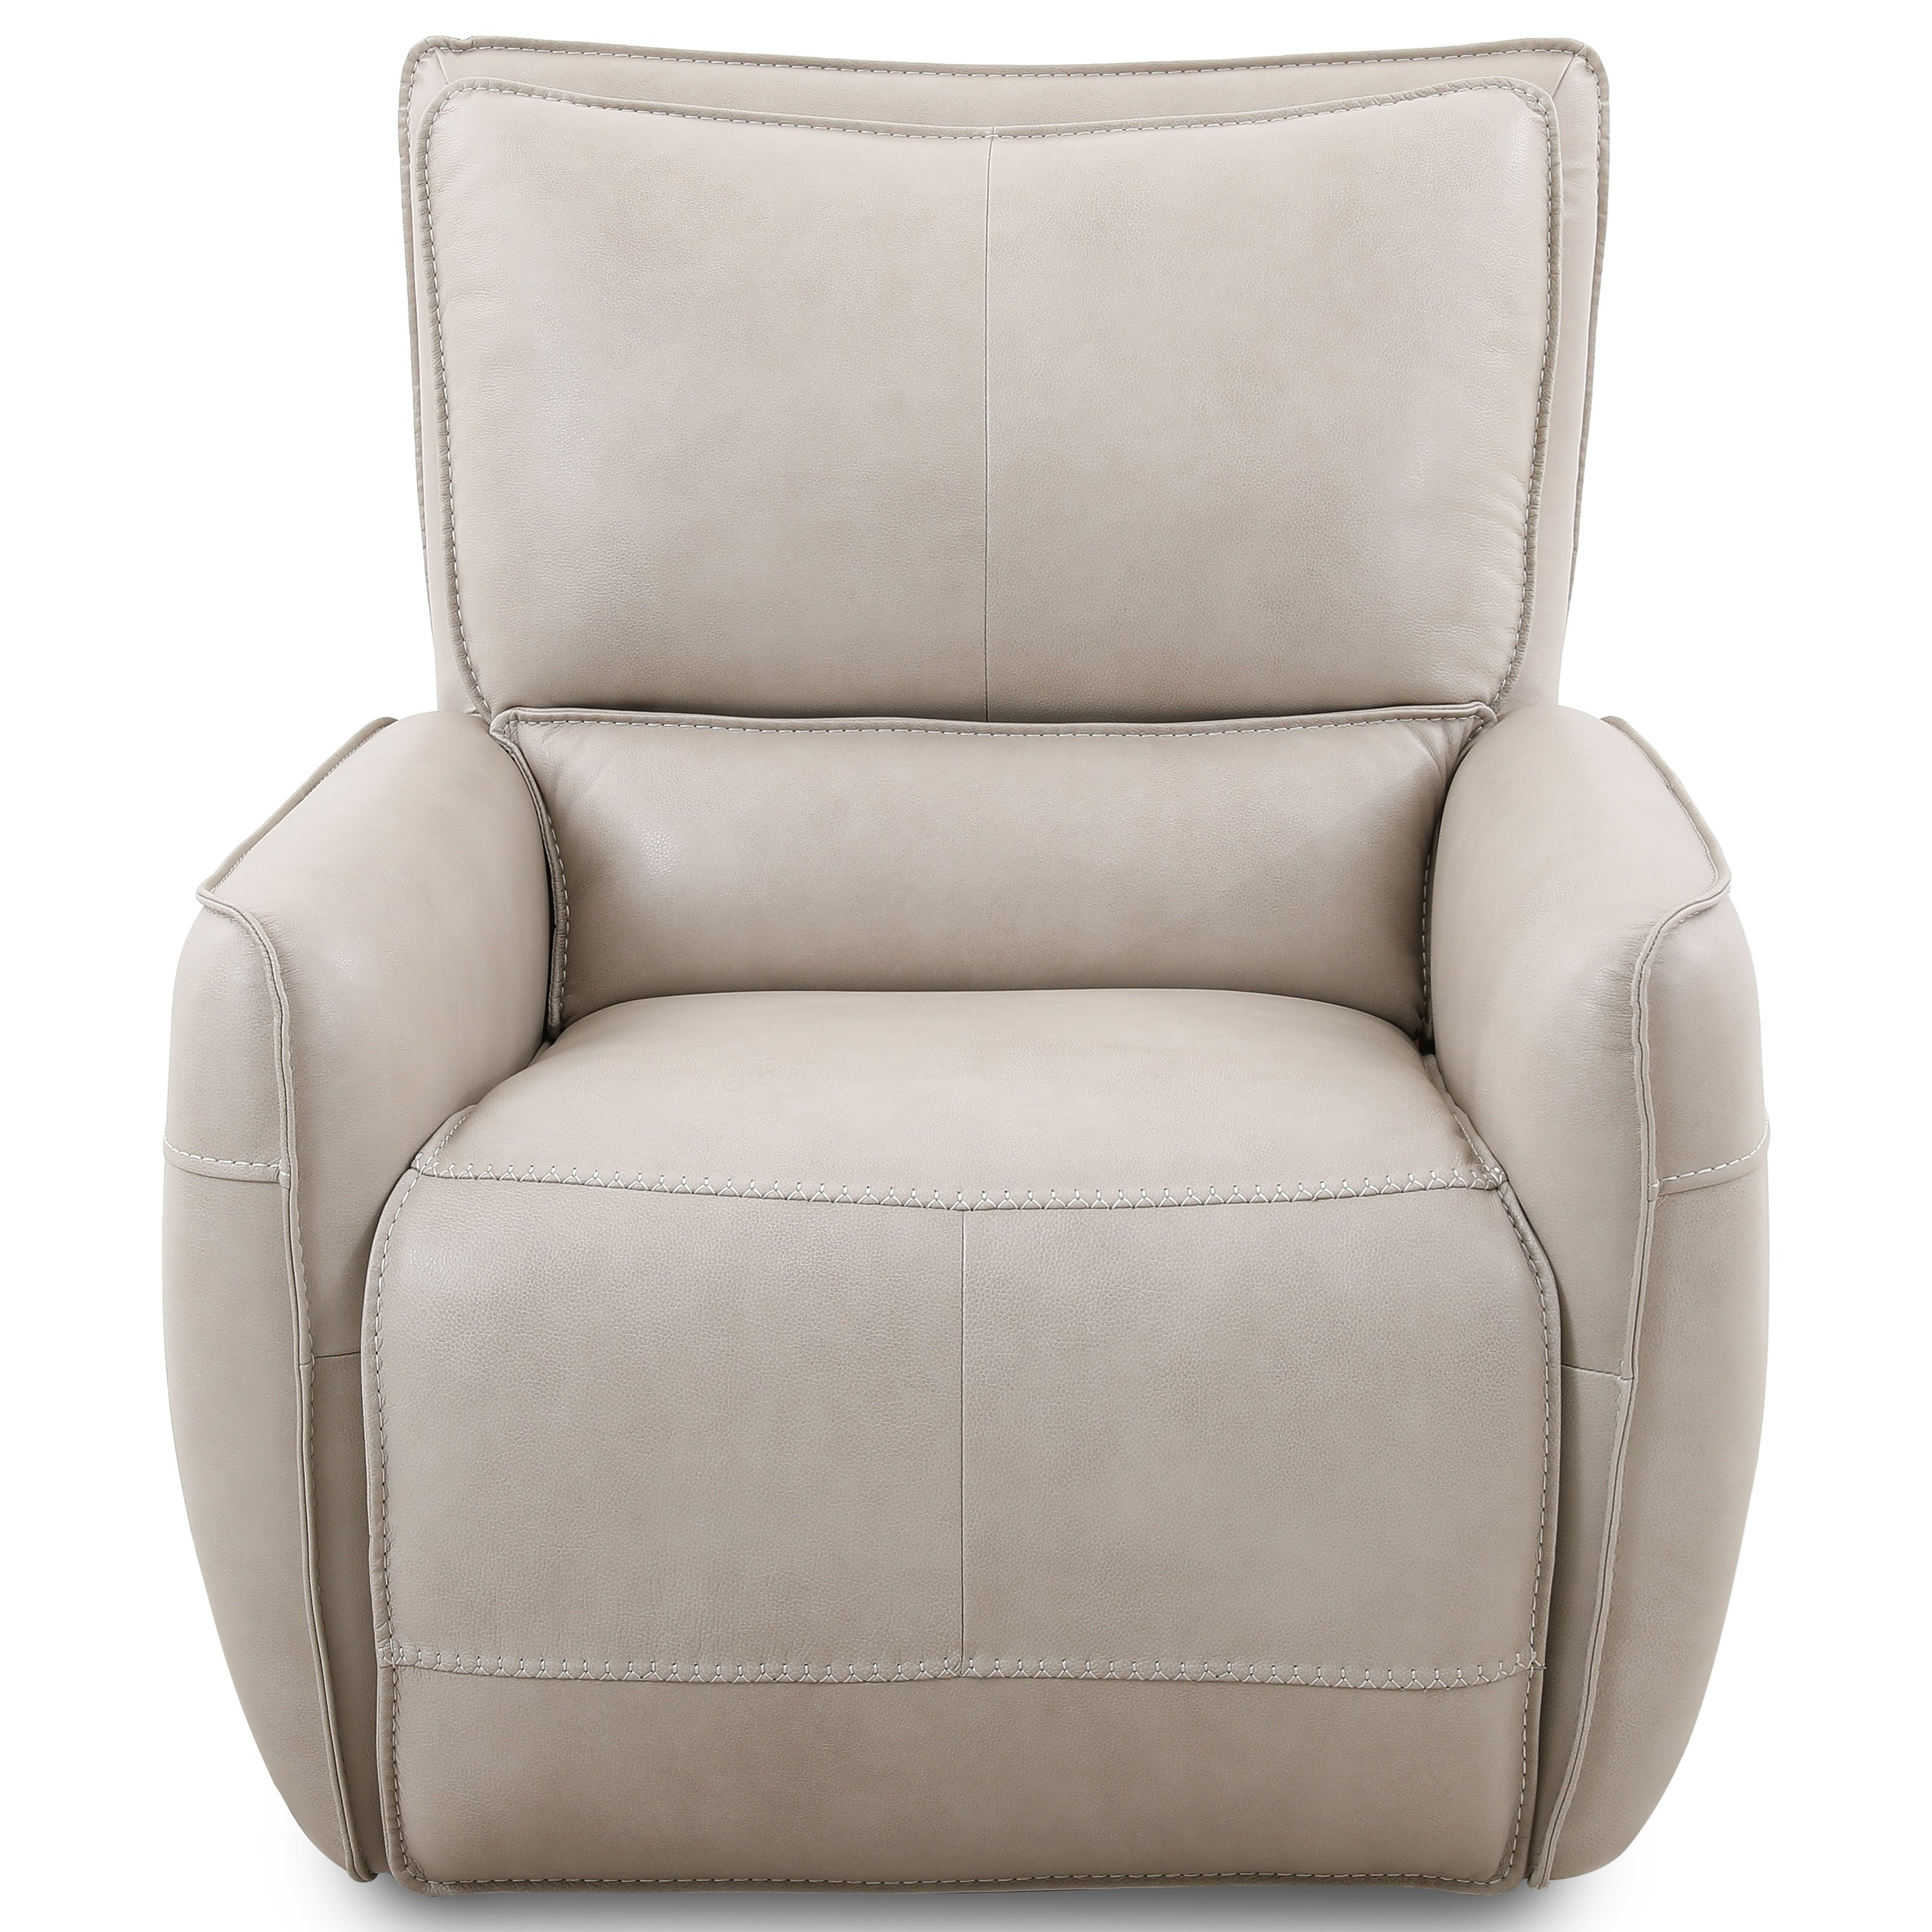 90080 Power Recliner by Cheers at Household Furniture